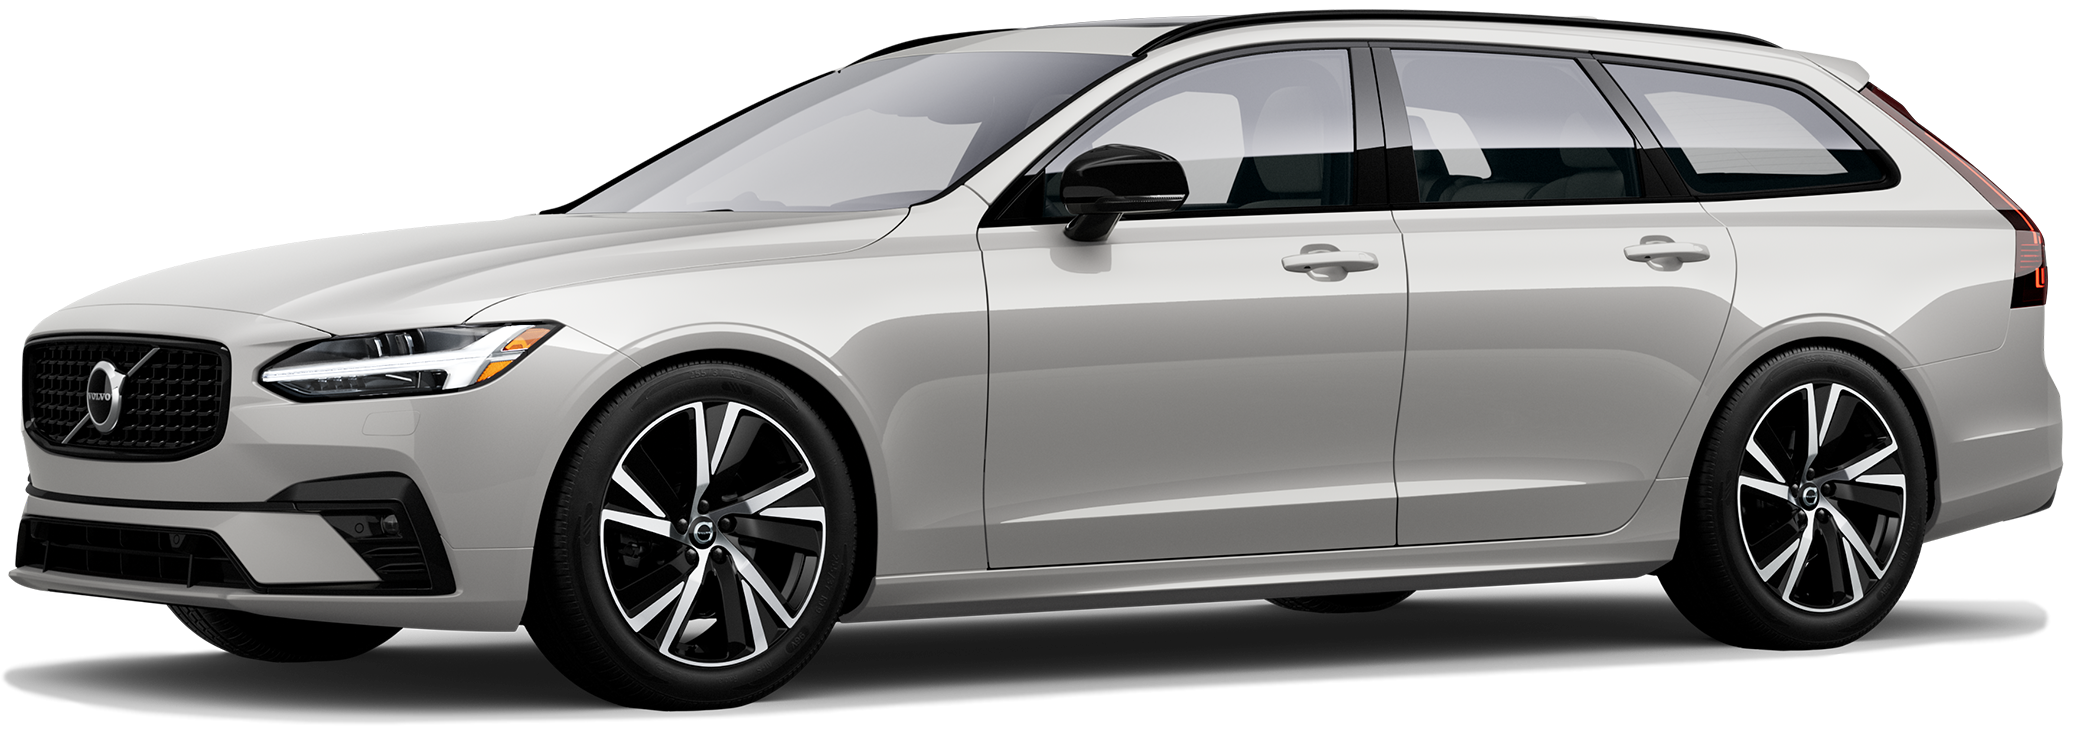 2021 Volvo V90 Incentives, Specials & Offers in Elmsford NY